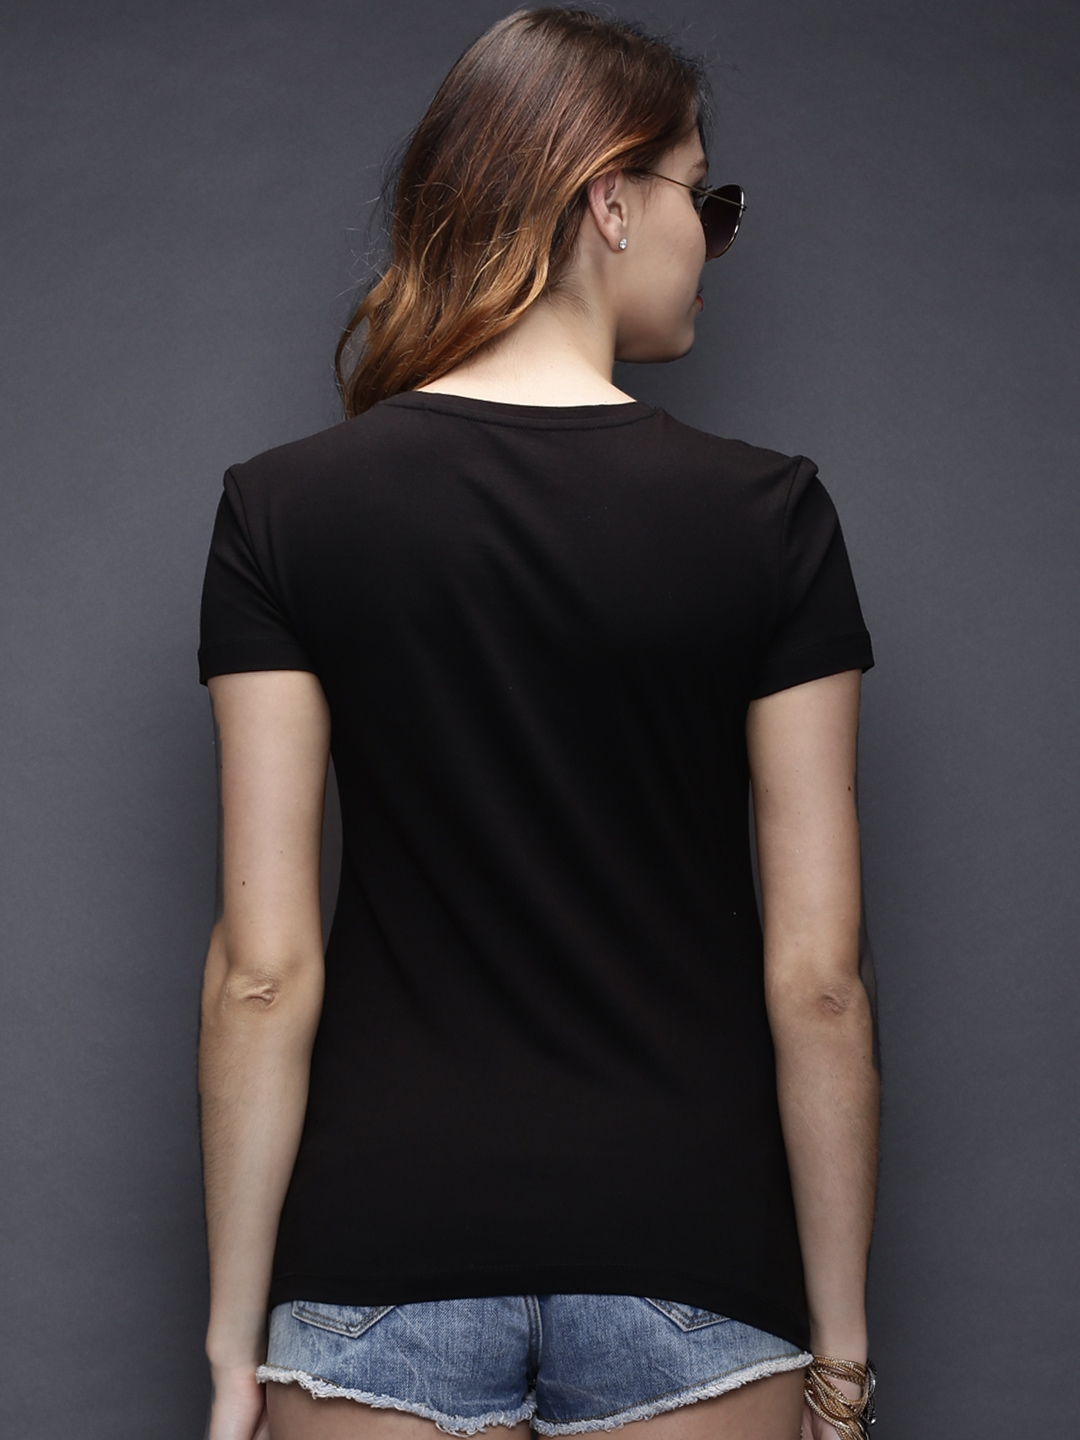 Myntra sela black perfect fit t shirt 834148 buy myntra for Perfect black t shirt